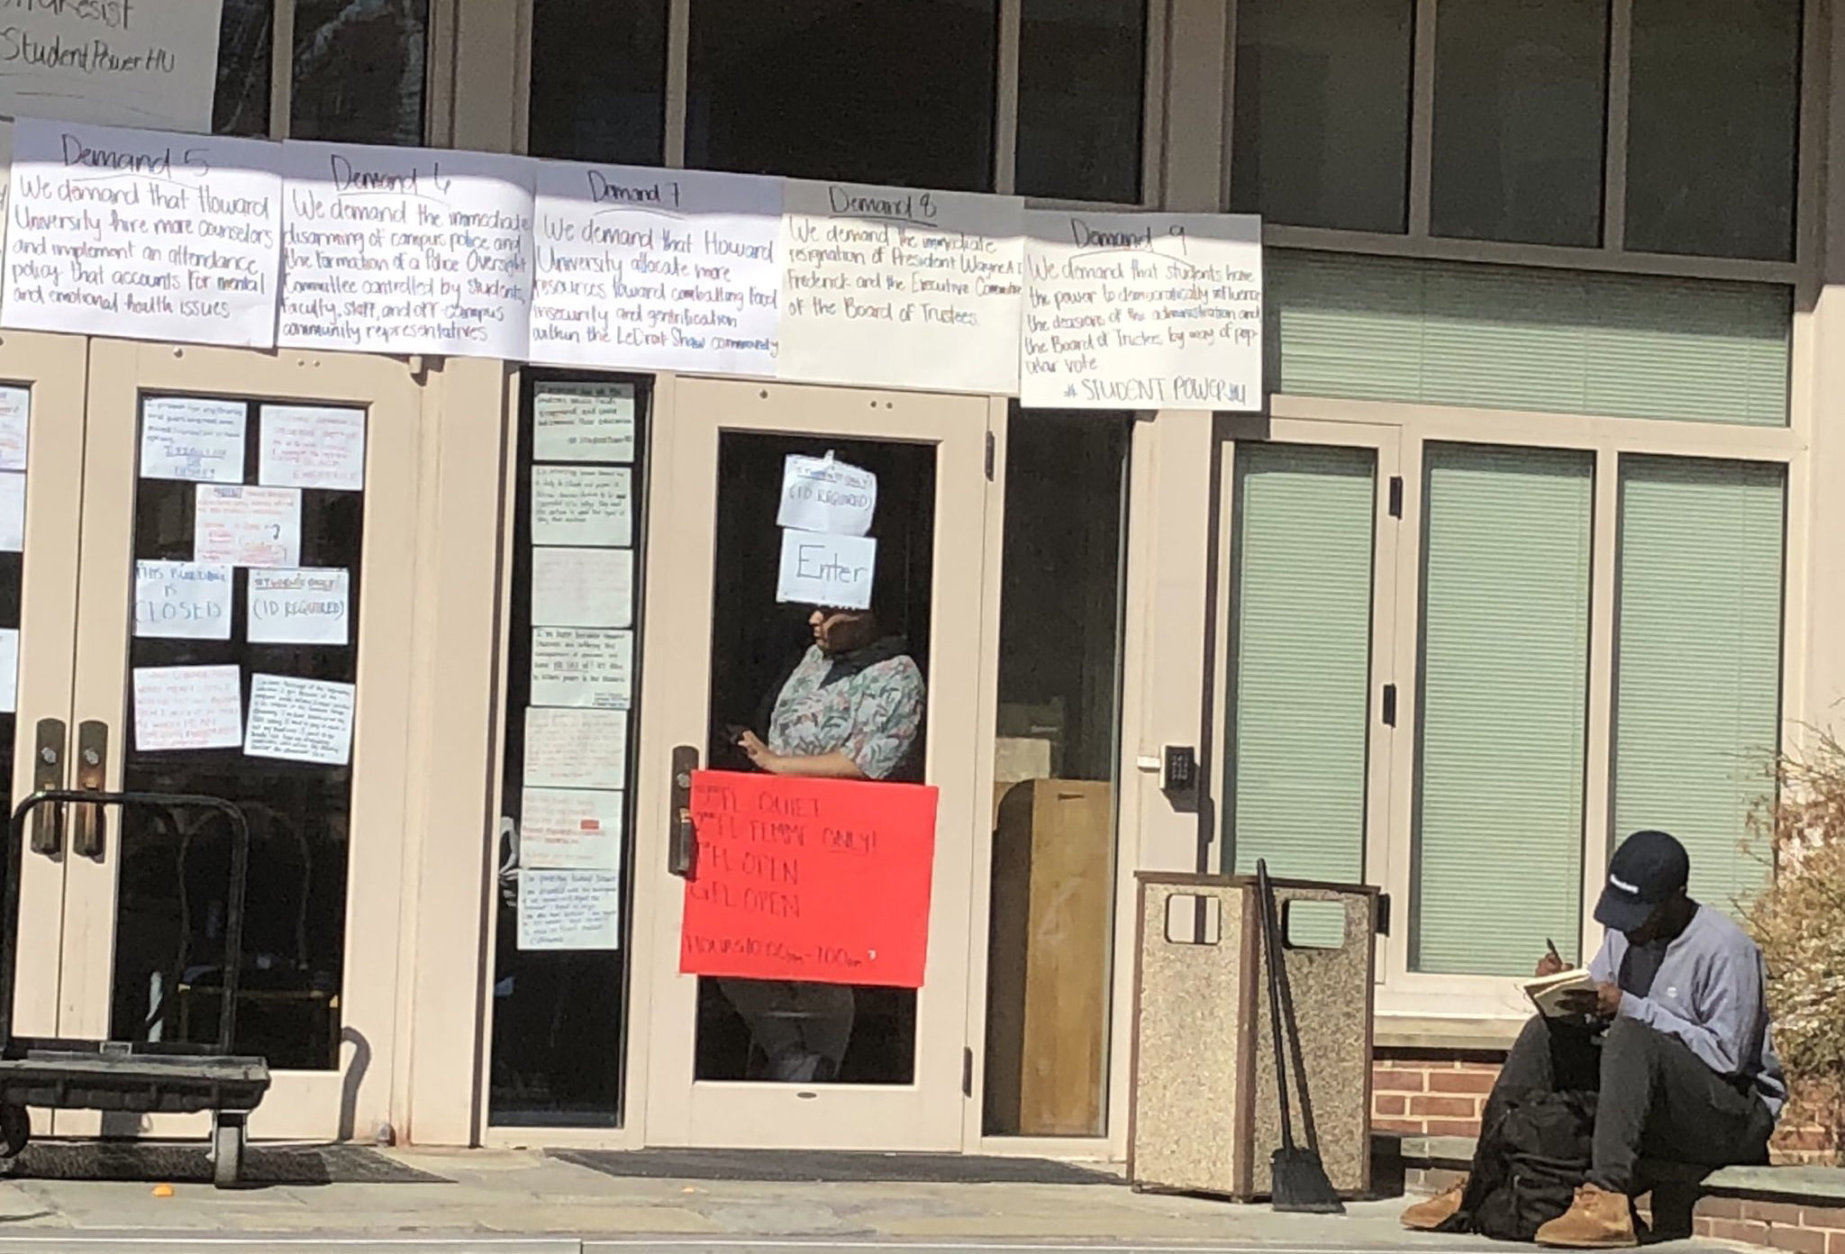 Protesters' demands are posted outside Howard University's Mordecai Wyatt Johnson Administration Building, which students have occupied since a sit-in began Thursday. (WTOP/Melissa Howell)